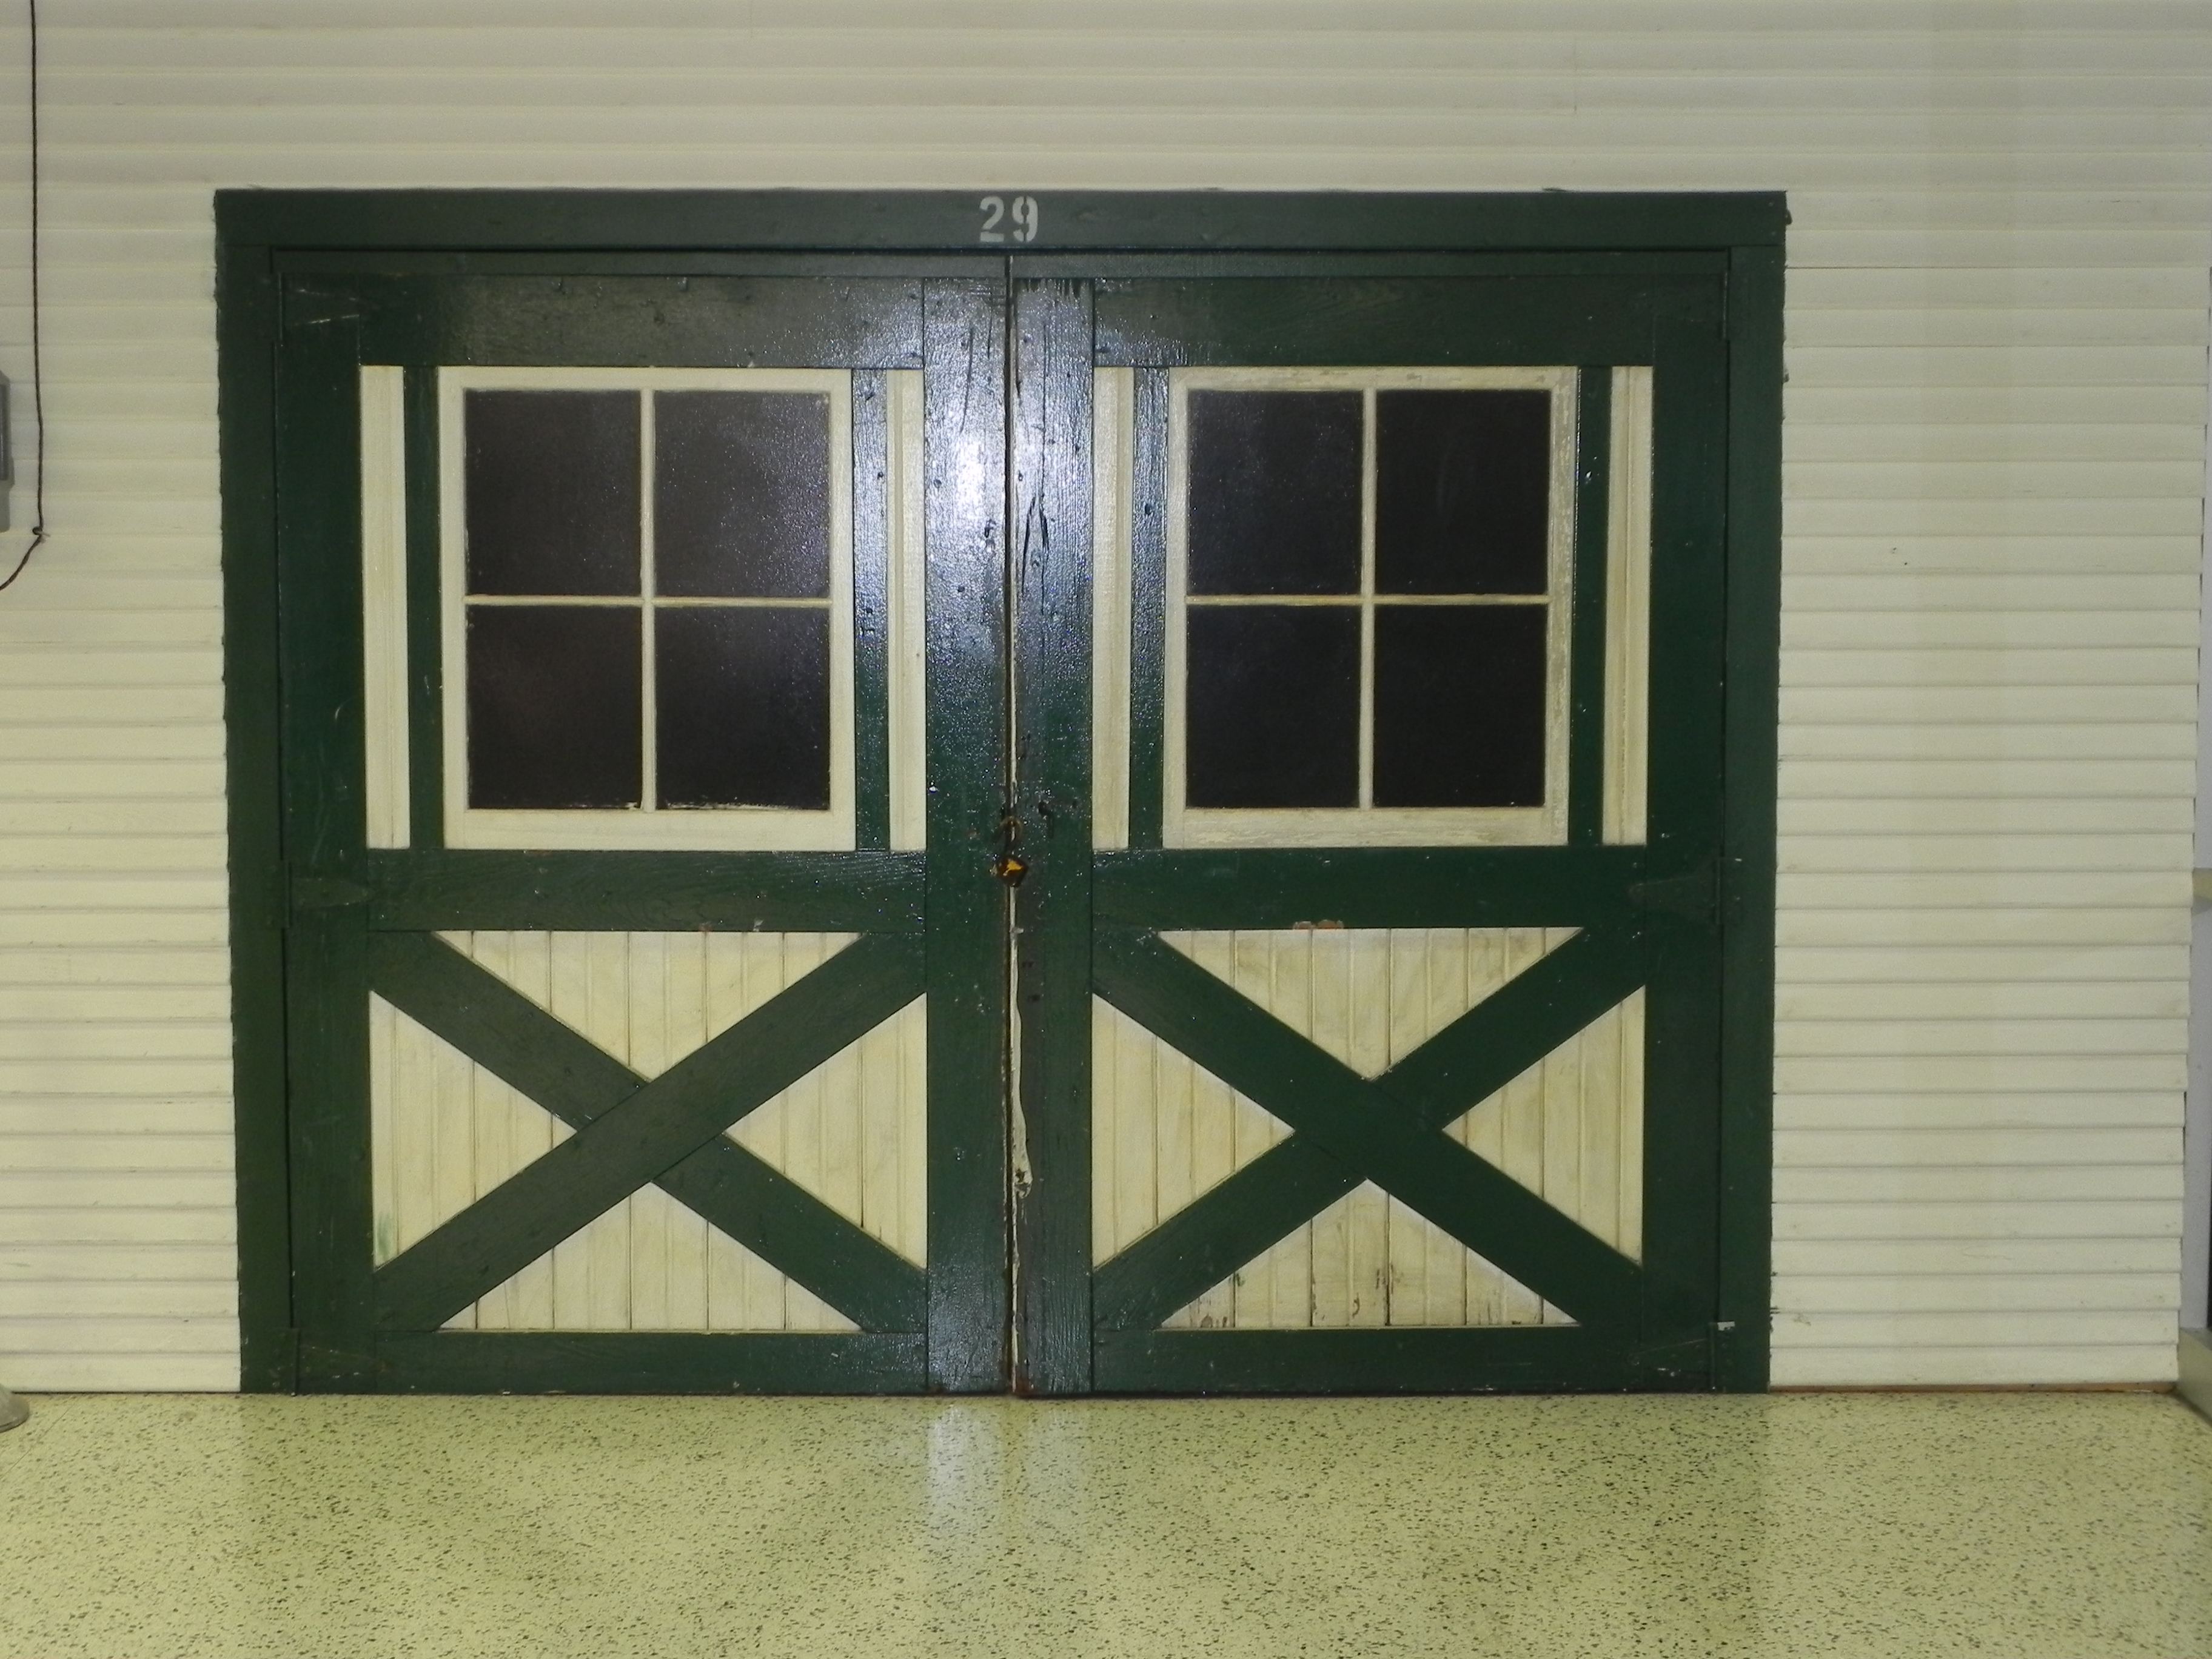 A Set Of Old Doors Set Up For Display At The Indianapolis Motor Speedway  Hall Of Fame Museum.